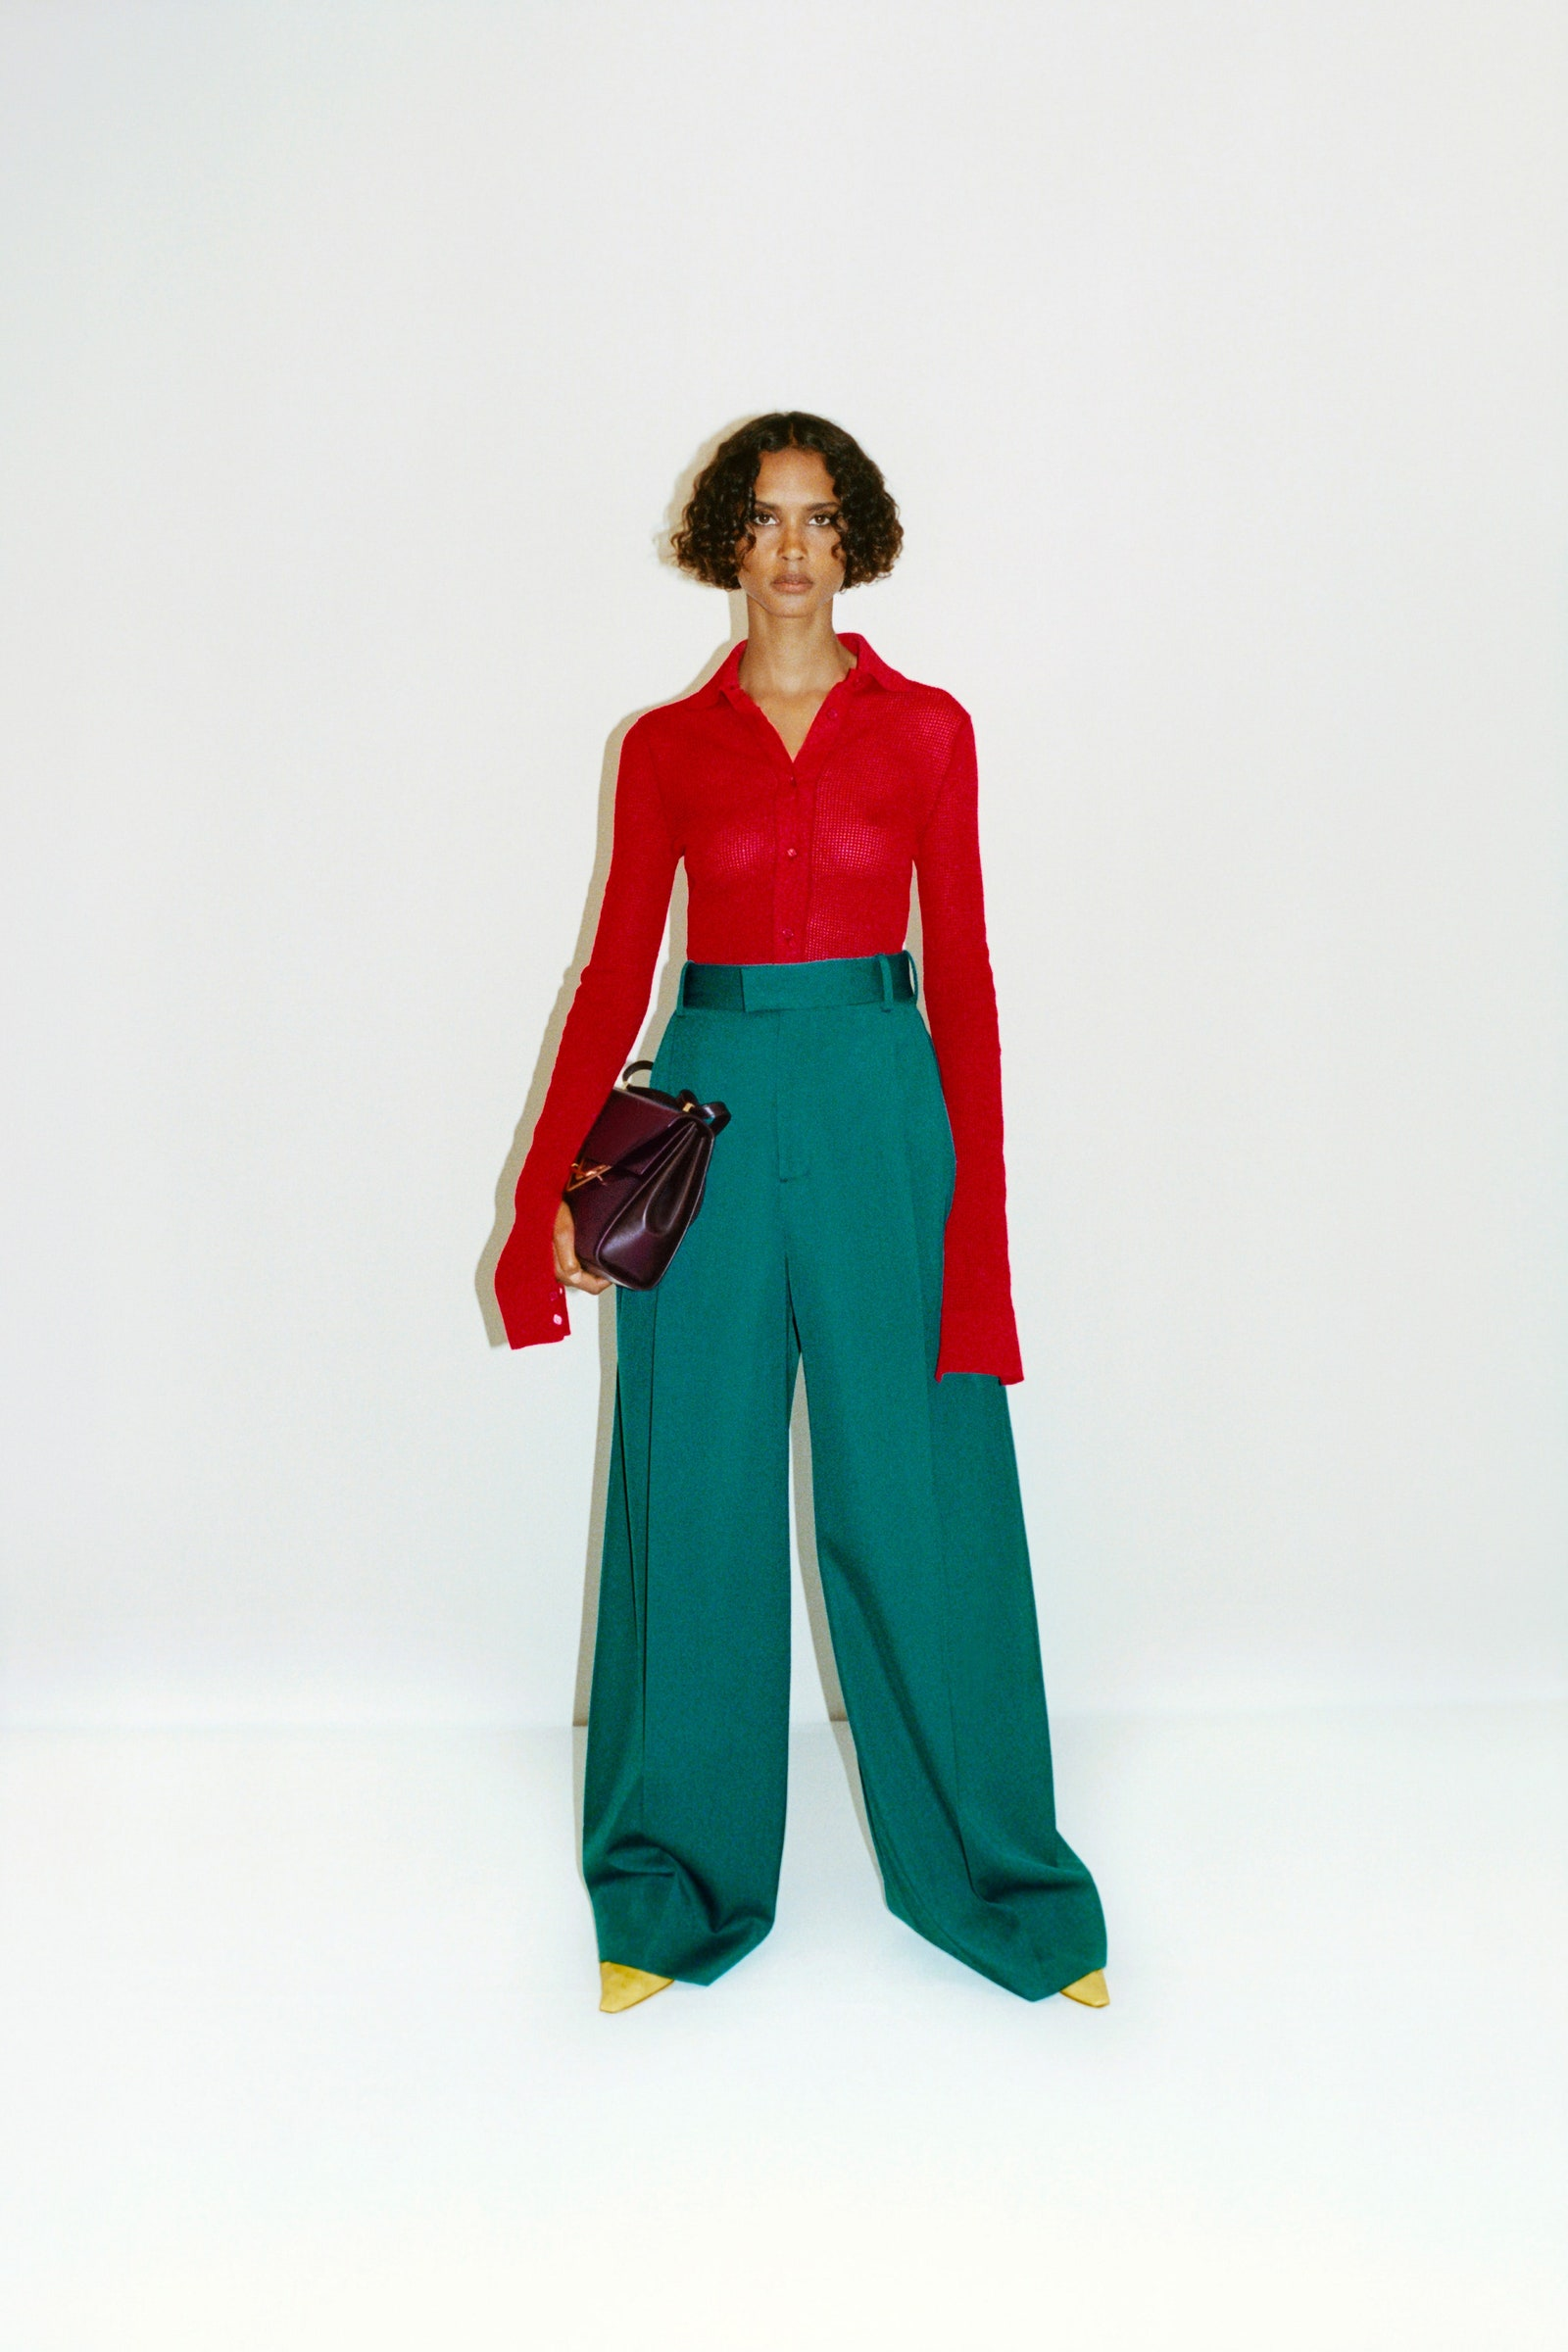 Bottega Veneta resort 2021